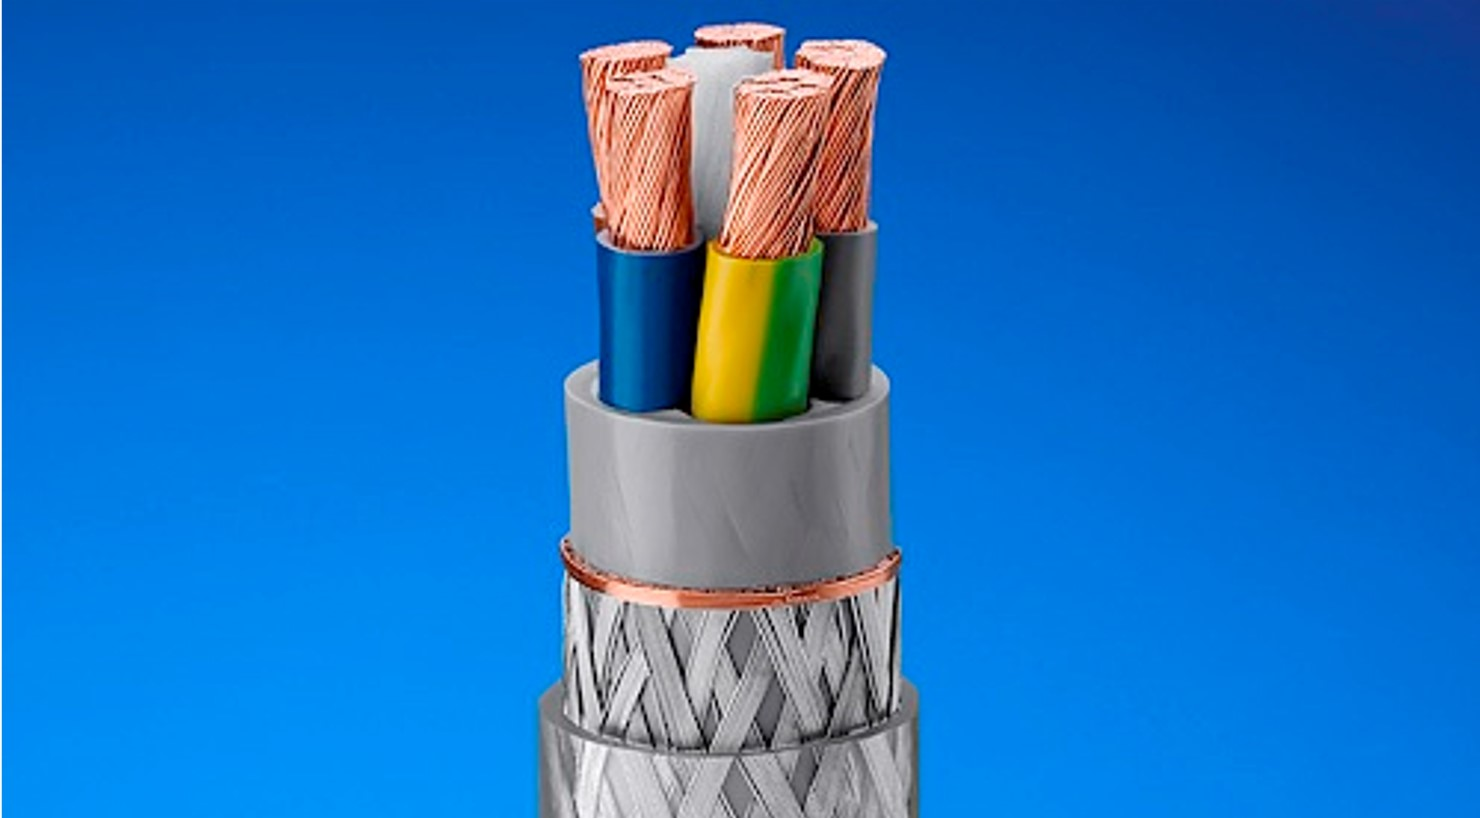 SY, YY and CY Flexible Cables - Should They Be Used in Electrical Installations?